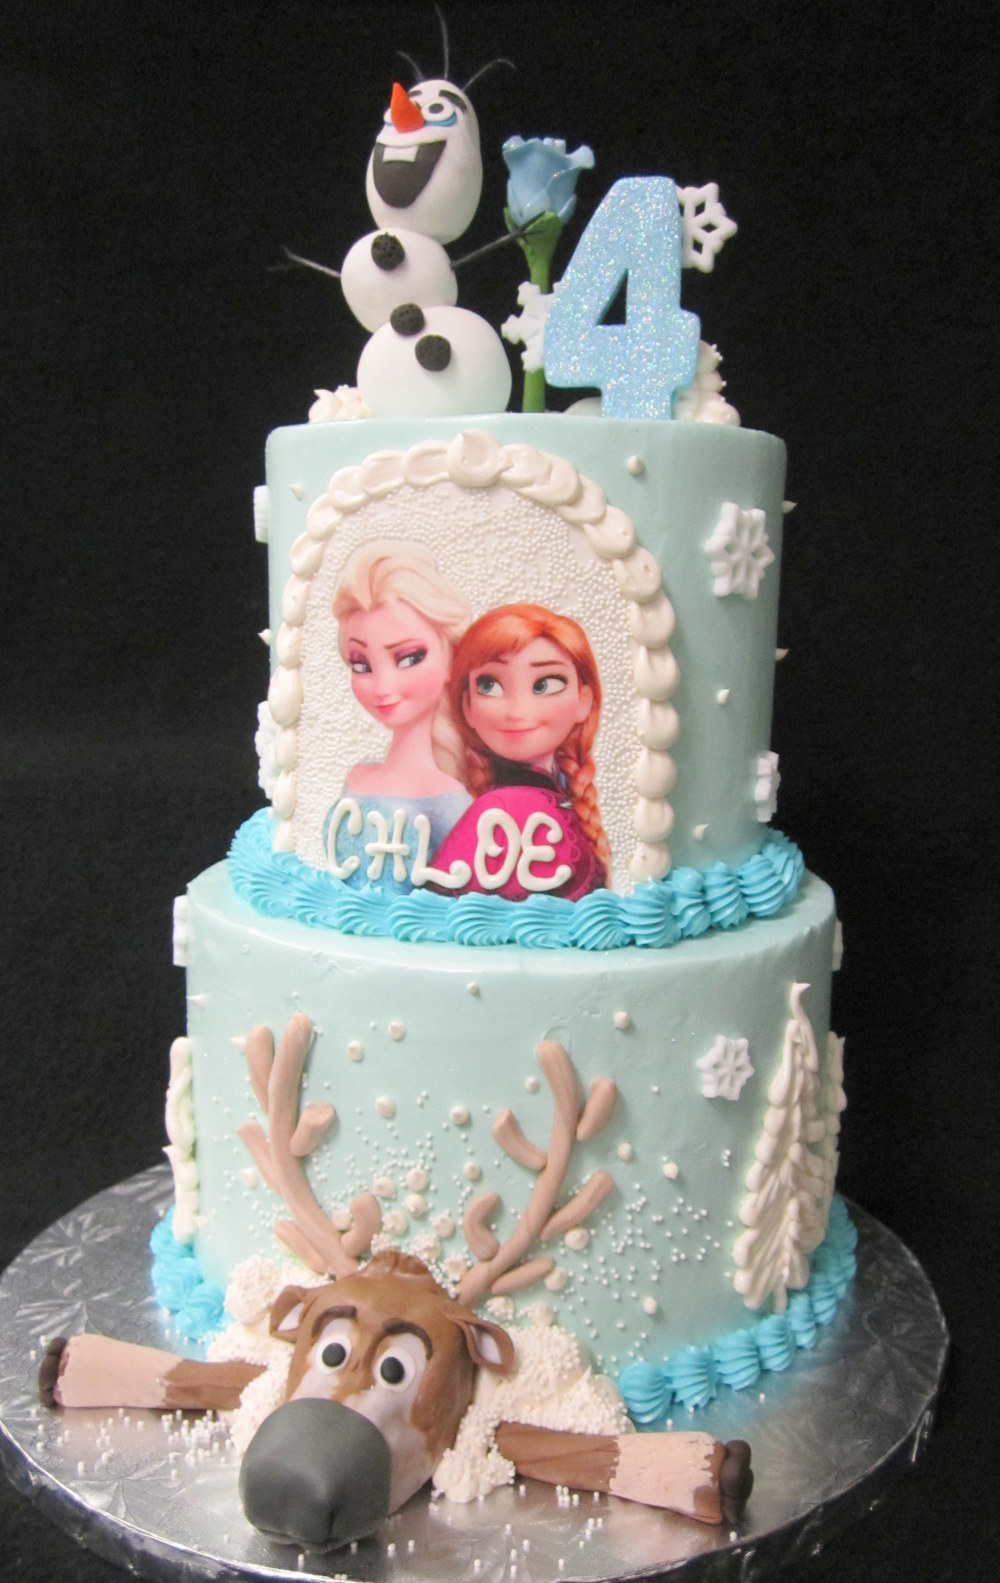 frozen with reindeer and princesses with olaf on top cake.jpg